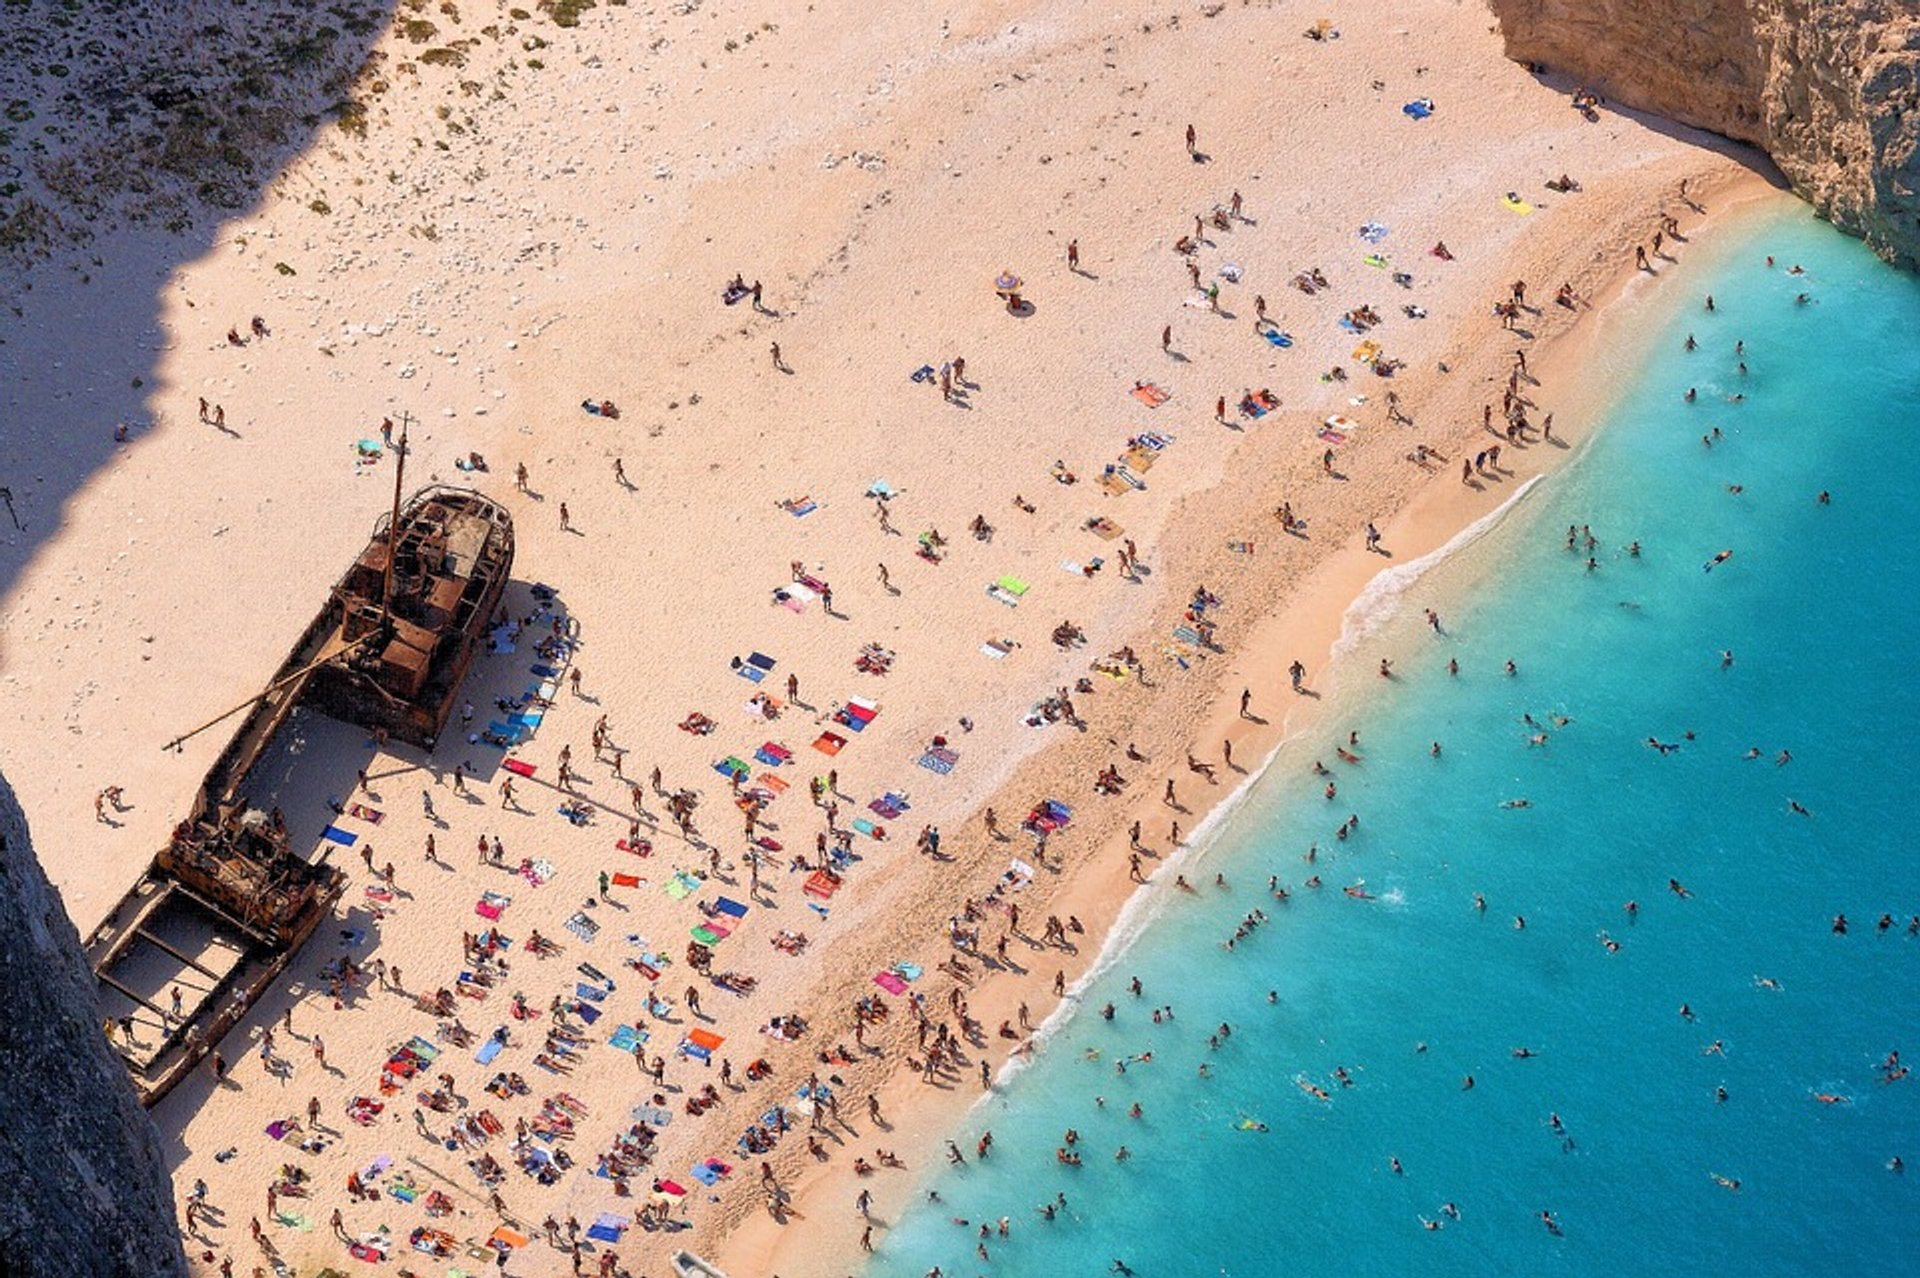 Navagio Shipwreck Beach in Greece 2019 - Best Time